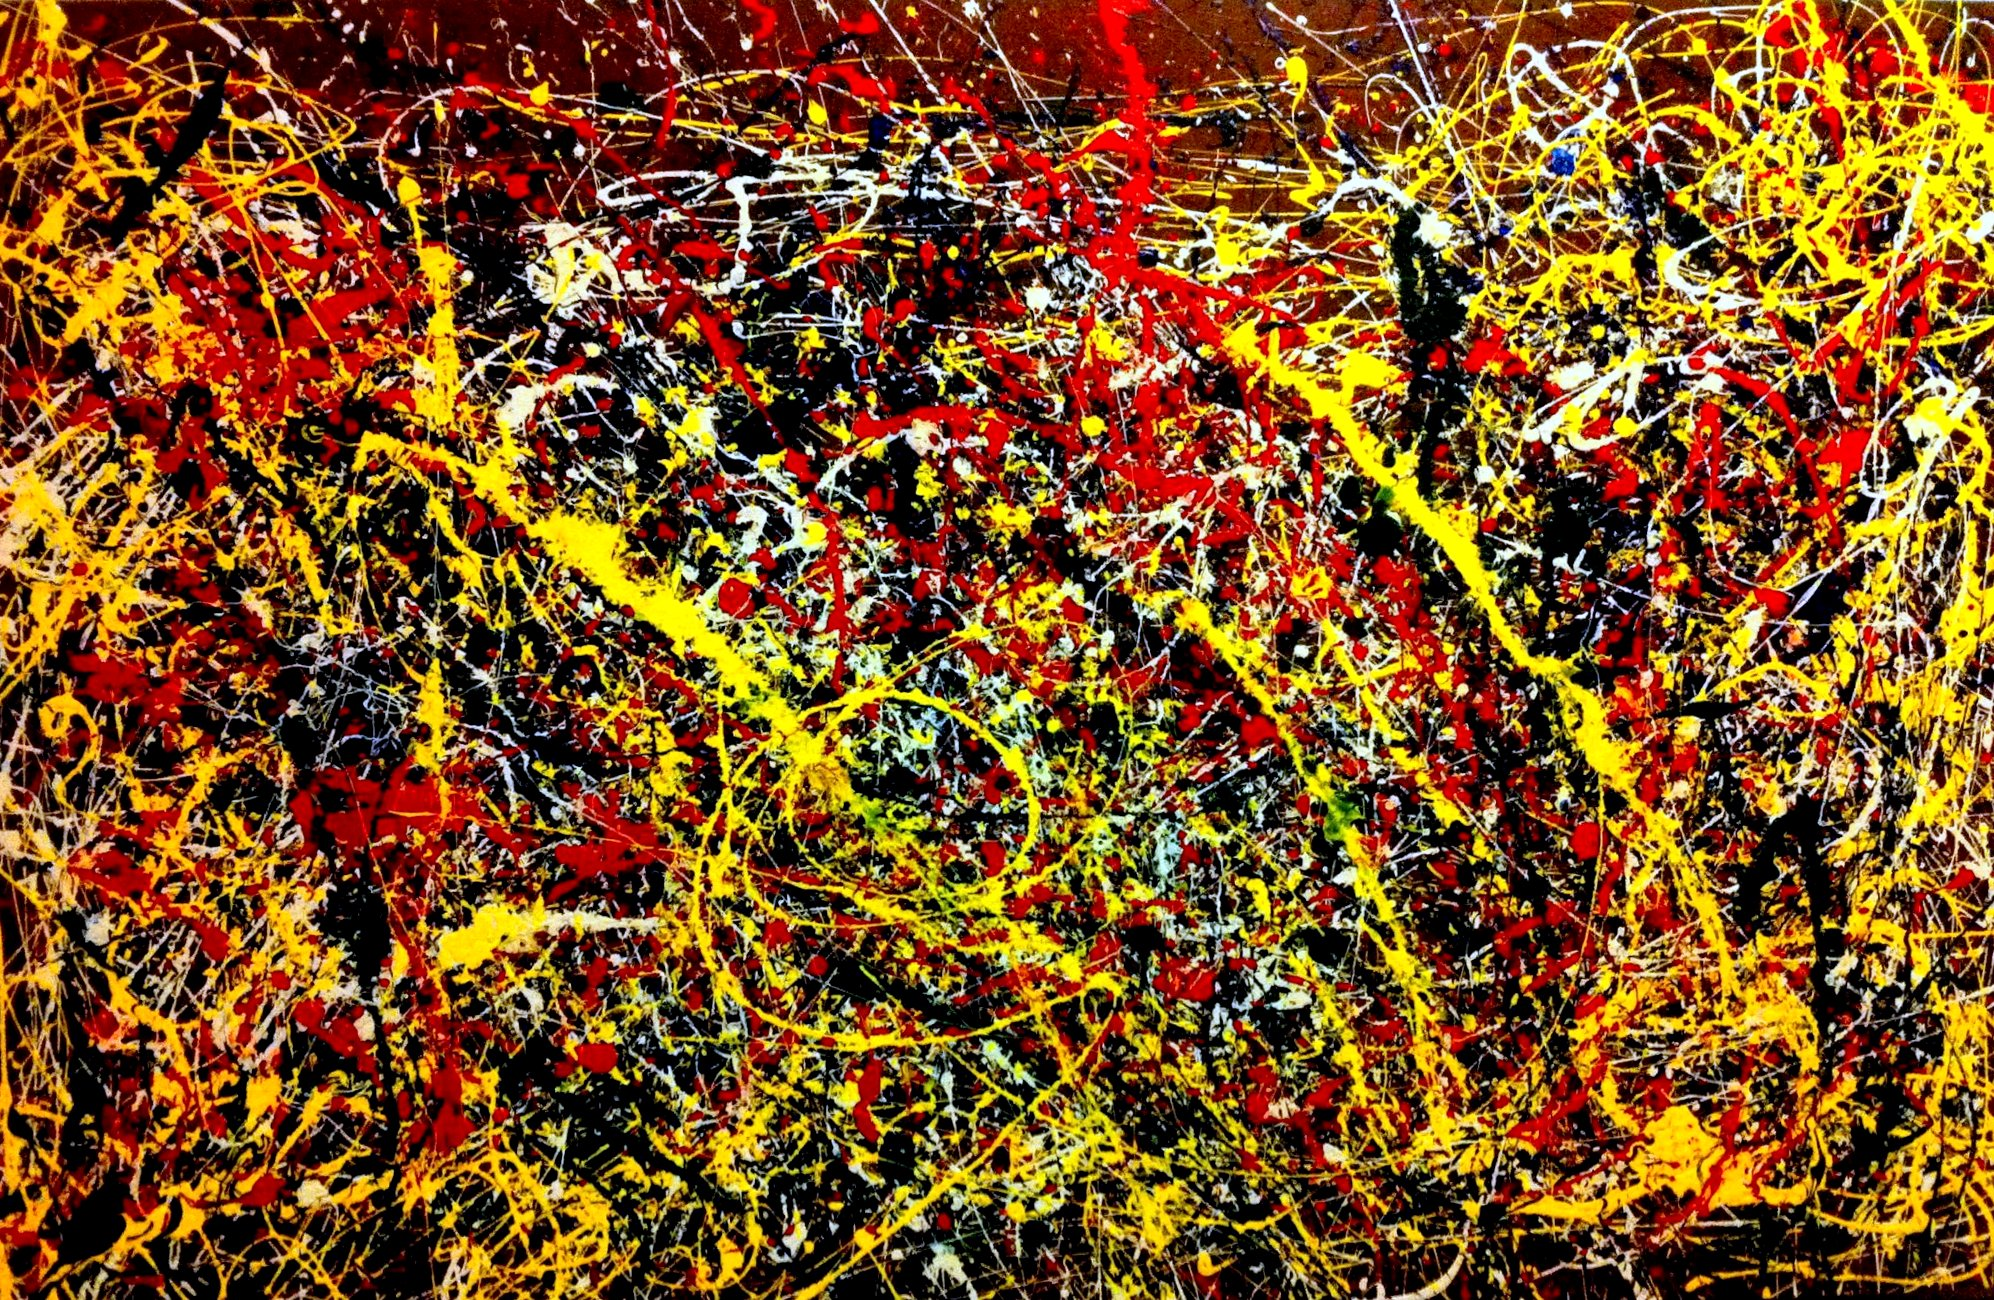 https://financialrisk.files.wordpress.com/2014/06/jackson_pollock_painting.jpg